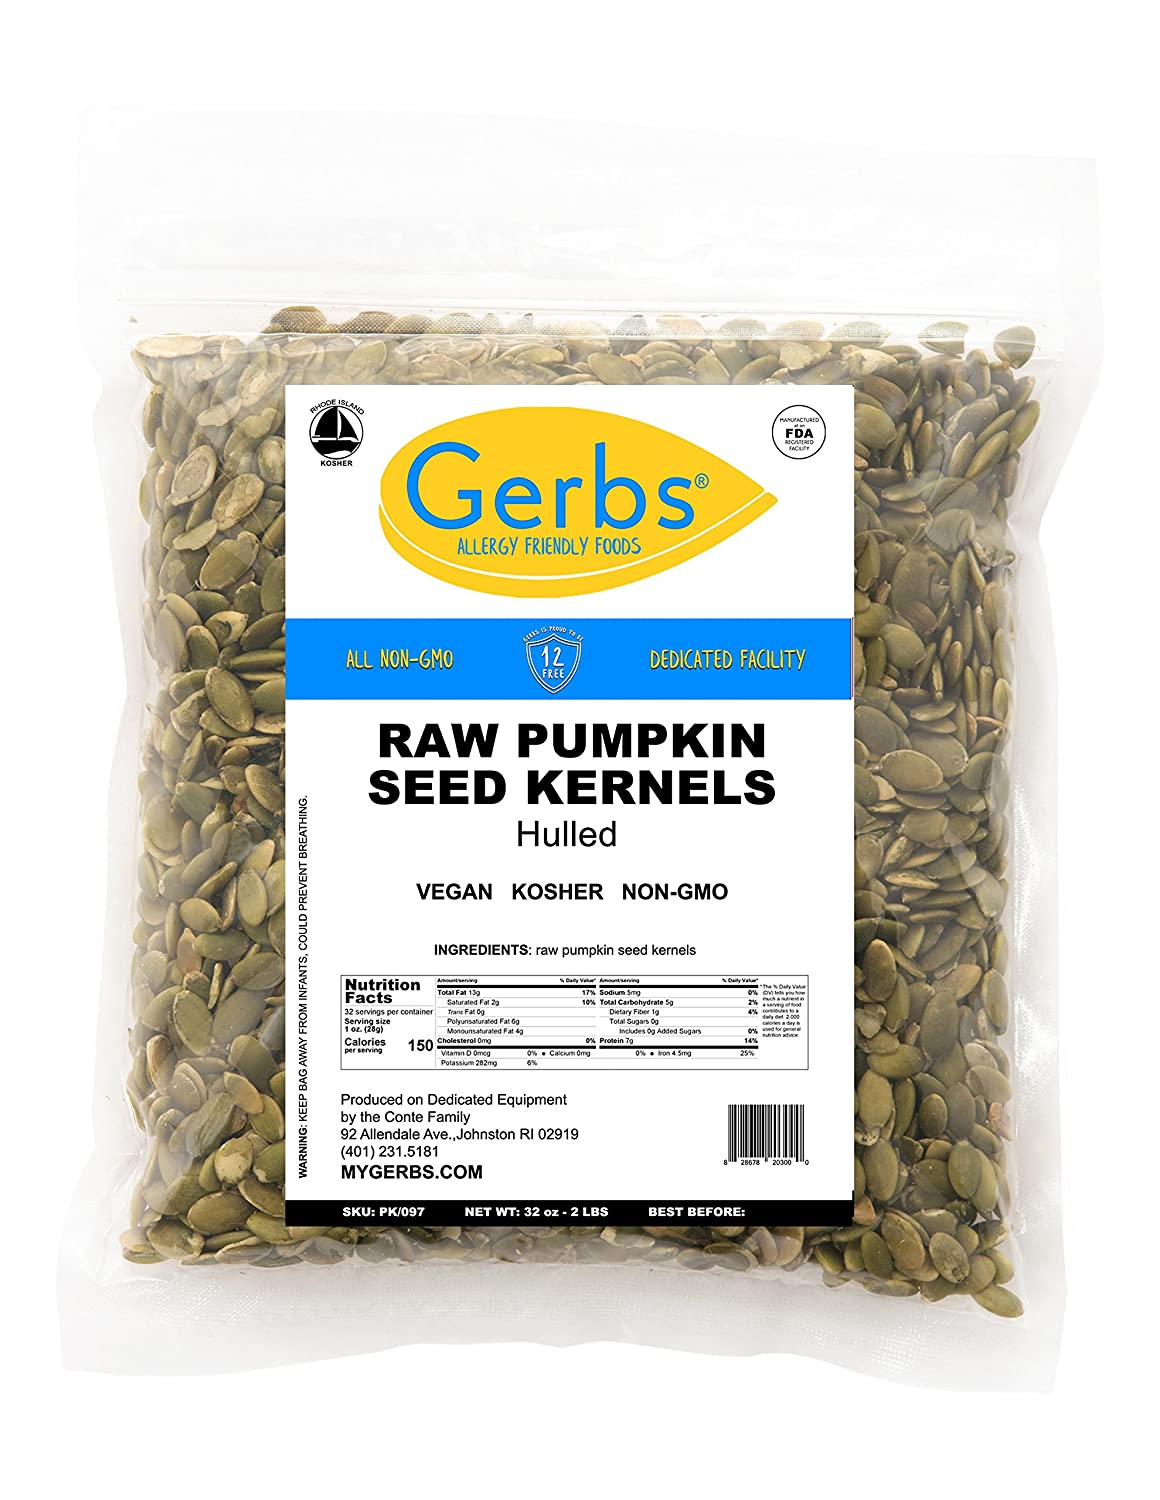 Gerbs Raw Pumpkin Seed Kernels, 2 LBS Closeable Bag, Top 14 Food Allergy Free